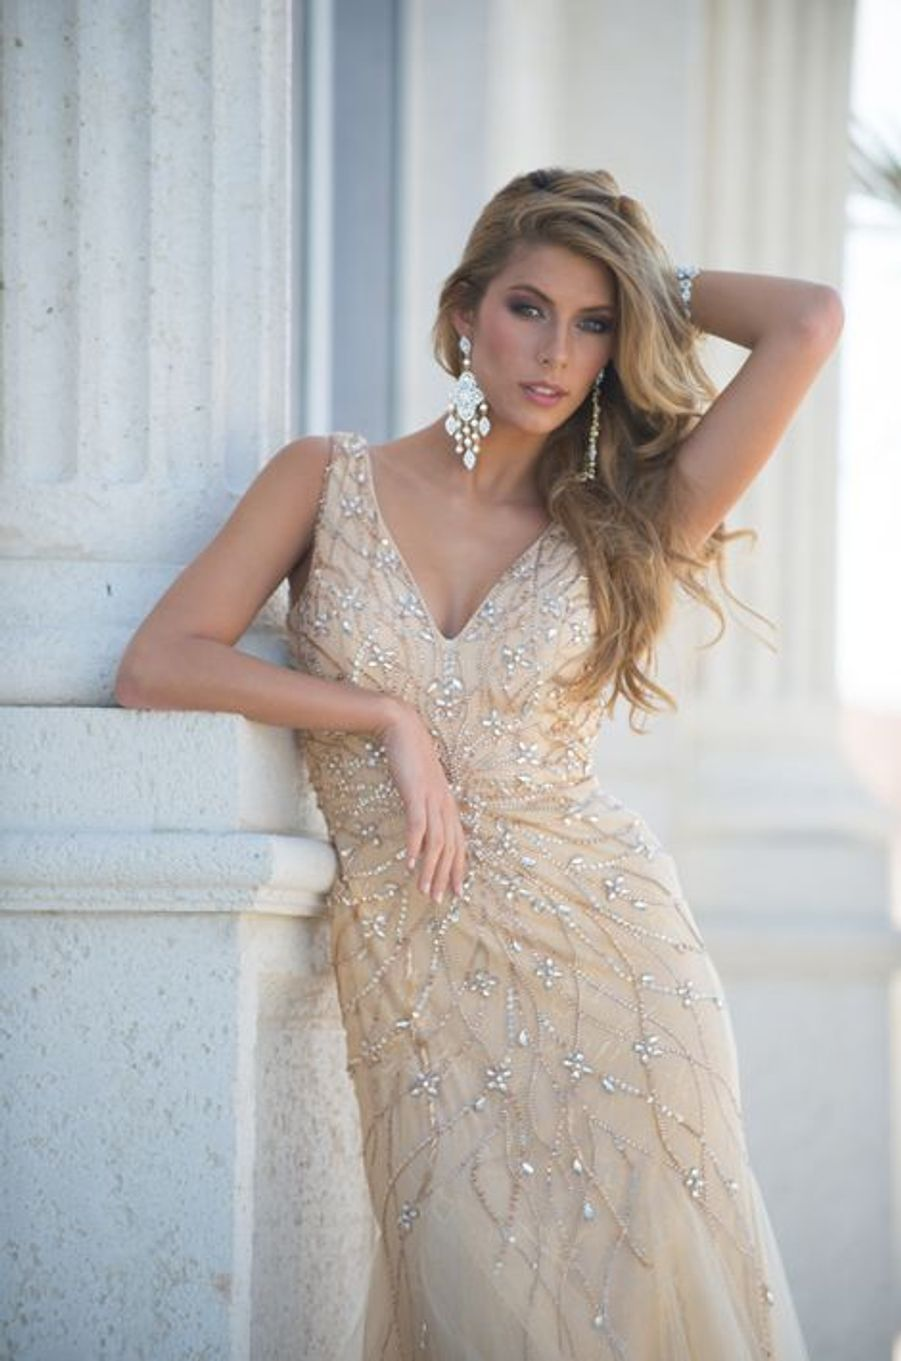 Camille Cerf pour Miss Univers 2015